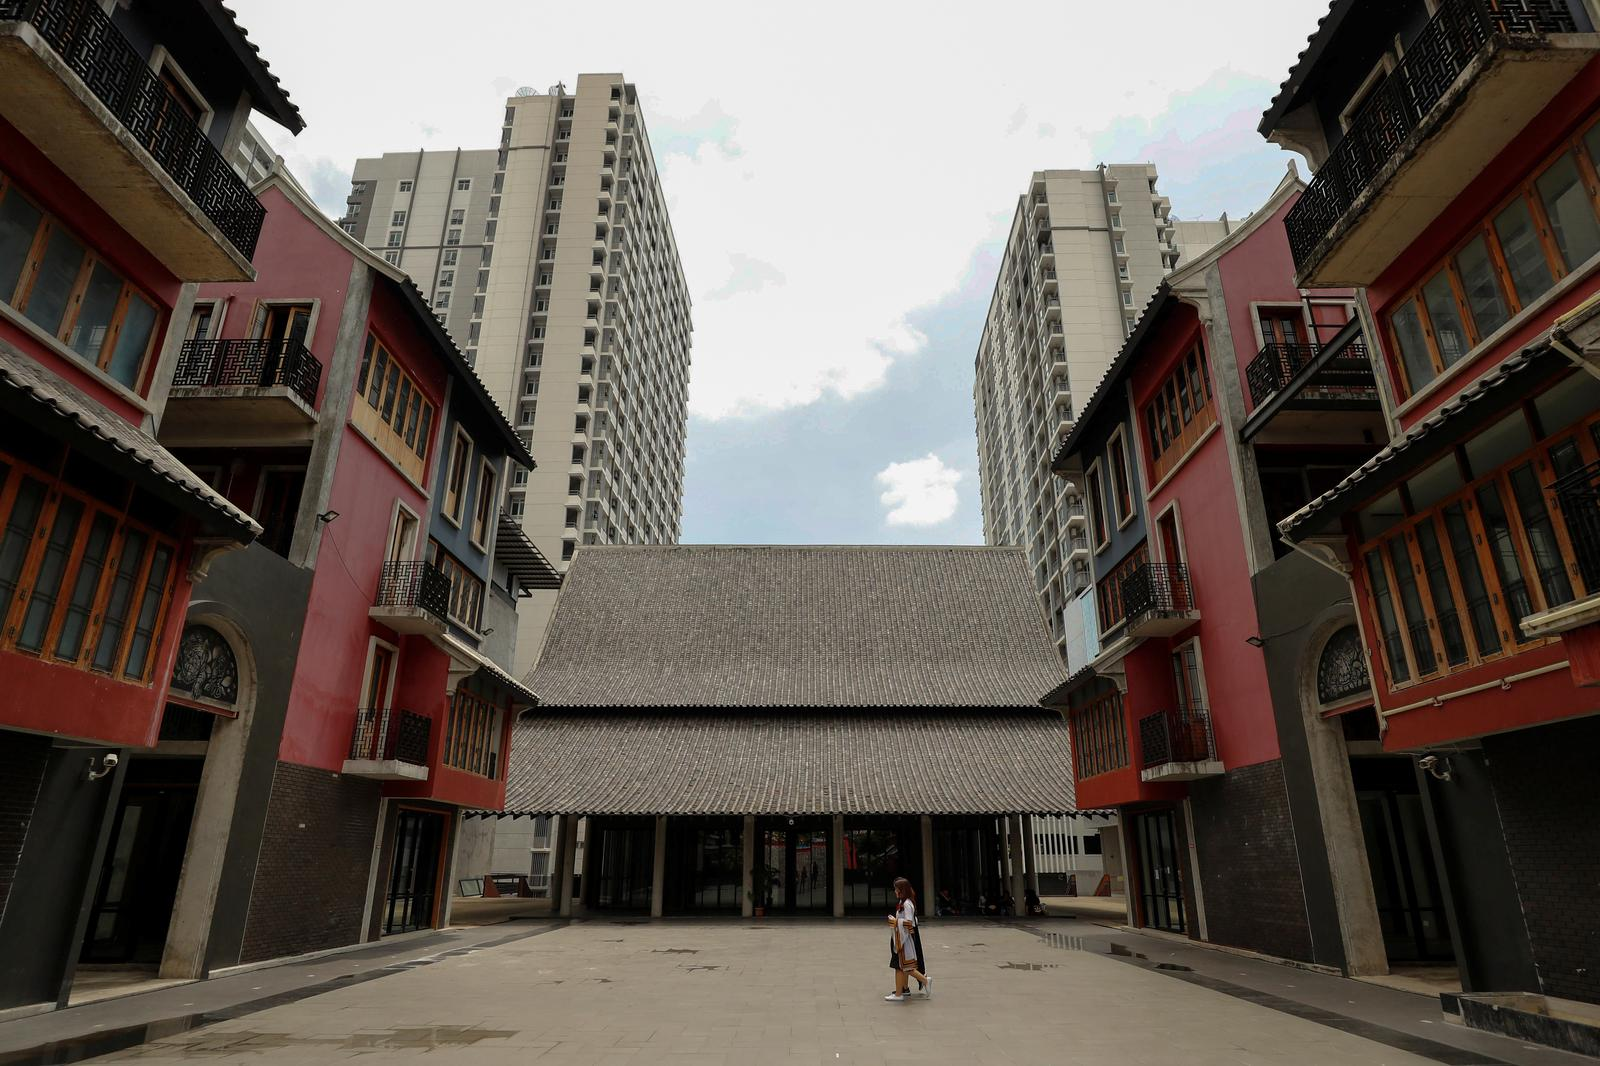 Commercial buildings and condos stand behind Chulalongkorn university near the Chao Mae Thap Thim shrine in Bangkok, Thailand, September 12, 2020. Bangkok's Chulalongkorn University, which owns the land, plans to construct two residential buildings in the place of the shrine despite protests from its own students. Photo: Reuters